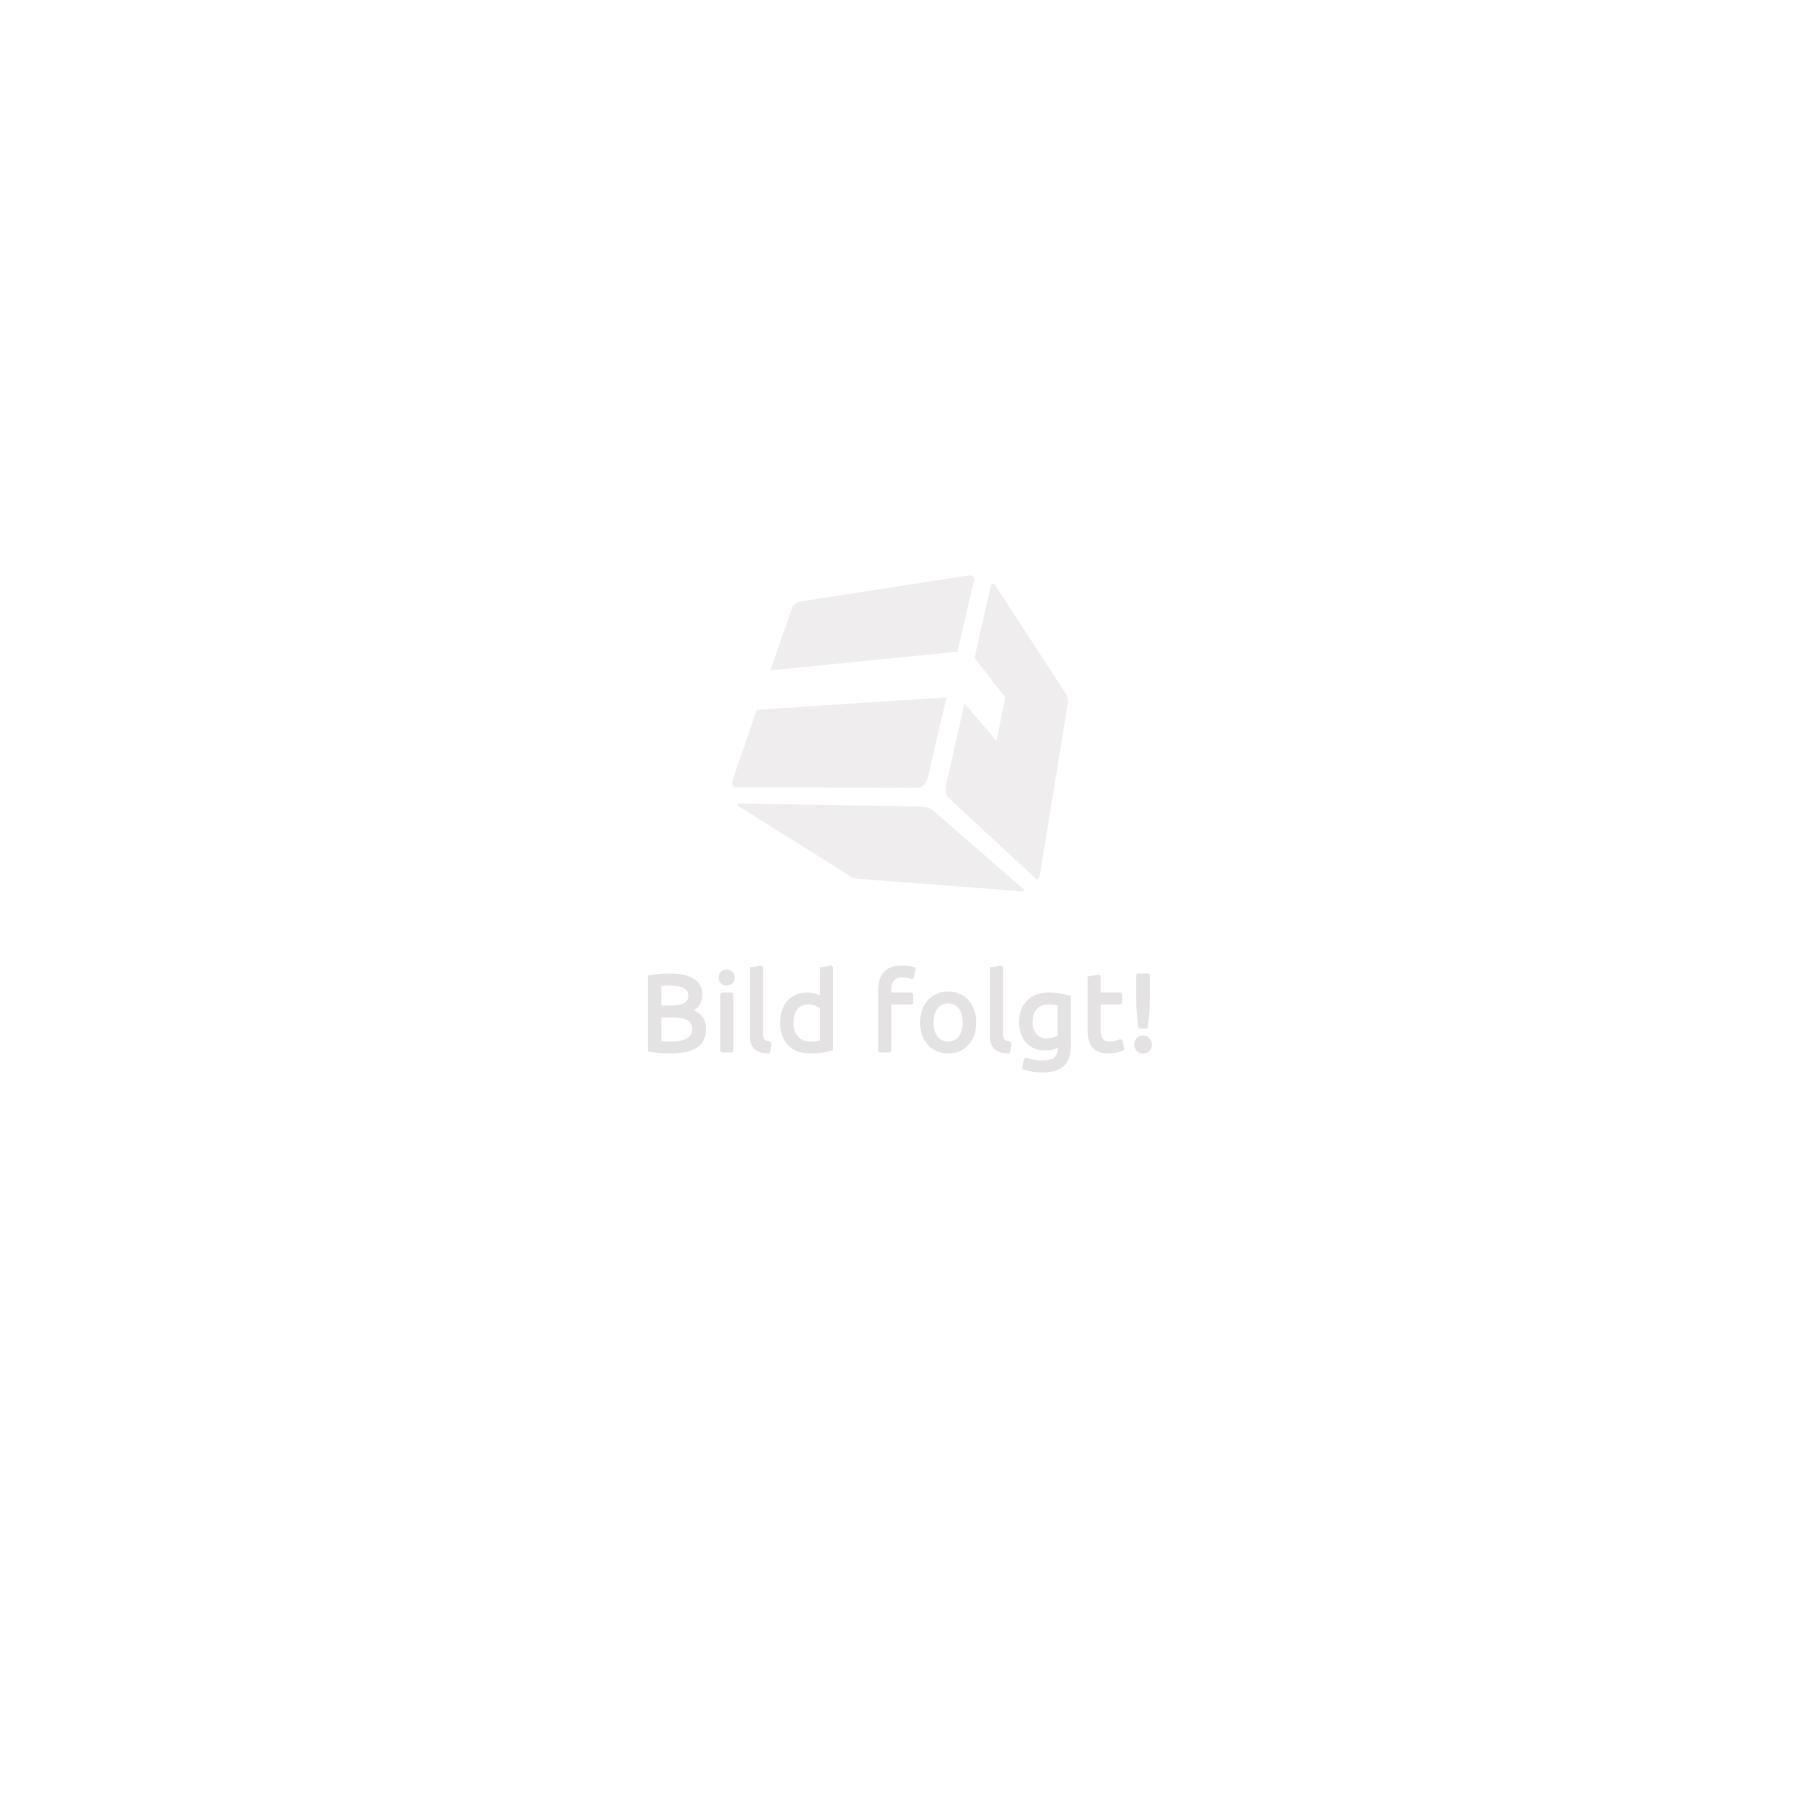 ensemble de jardin pour enfant 2 bancs parasol table d 39 activit si ges lavable ebay. Black Bedroom Furniture Sets. Home Design Ideas